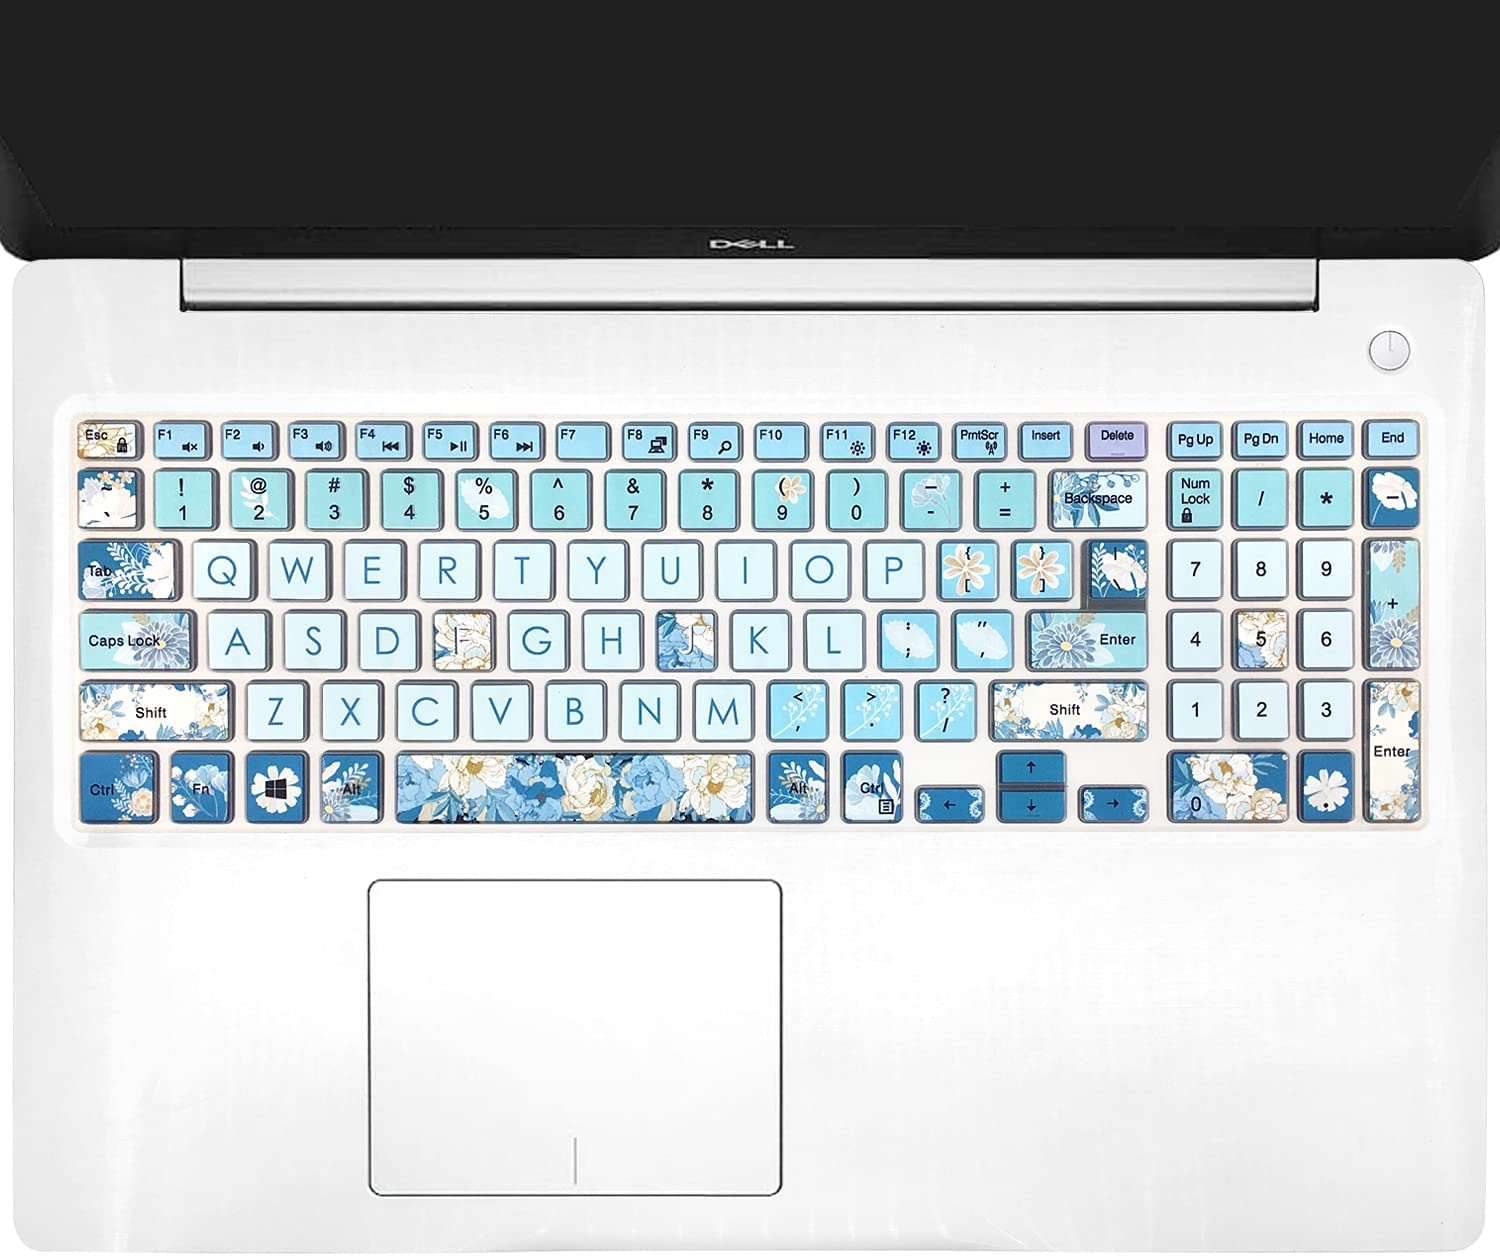 Keyboard Cover for Old Dell Inspiron 15 3000 5000 15.6'' Series, Dell G3 15 17 Series, Dell G5 15 Series, Dell G7 15 17 Series, Insprion 17 5000 Series, Peony